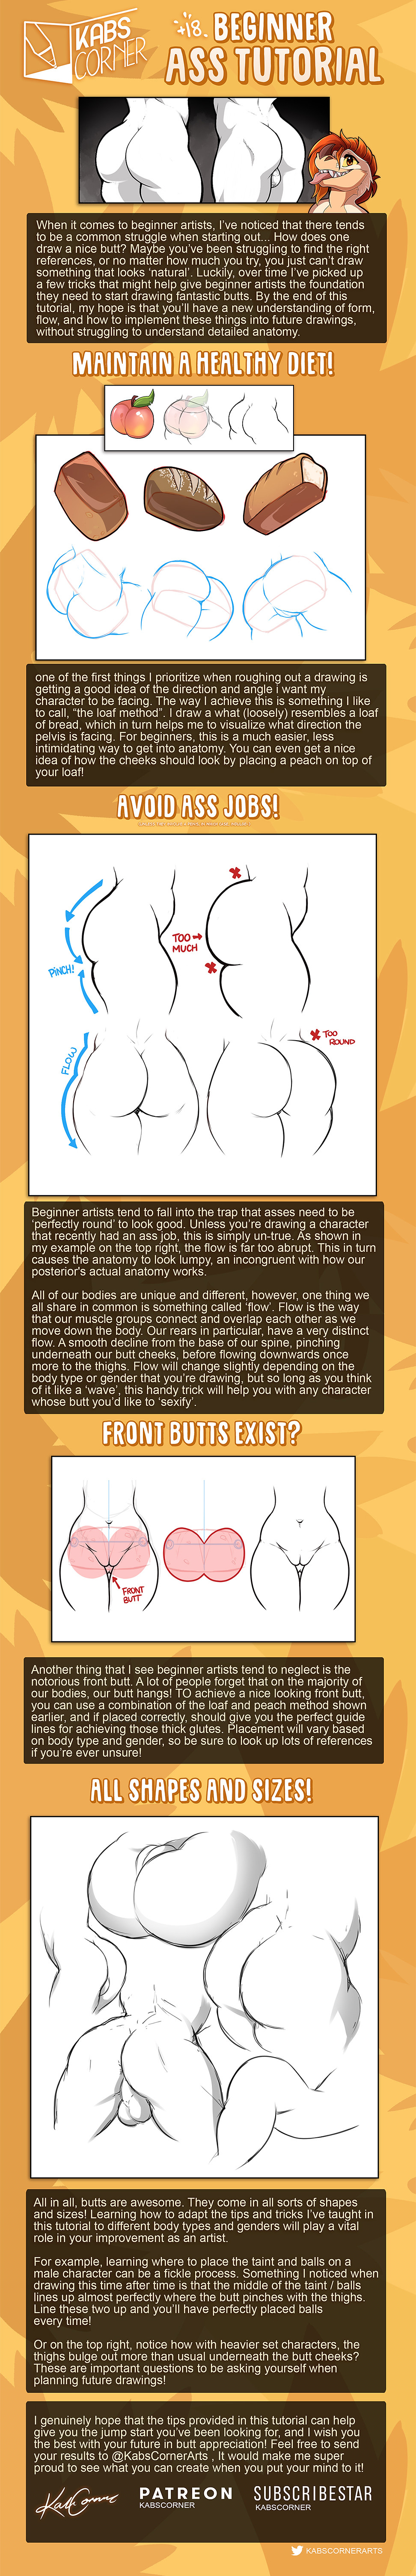 Ass Tutorial.jpg